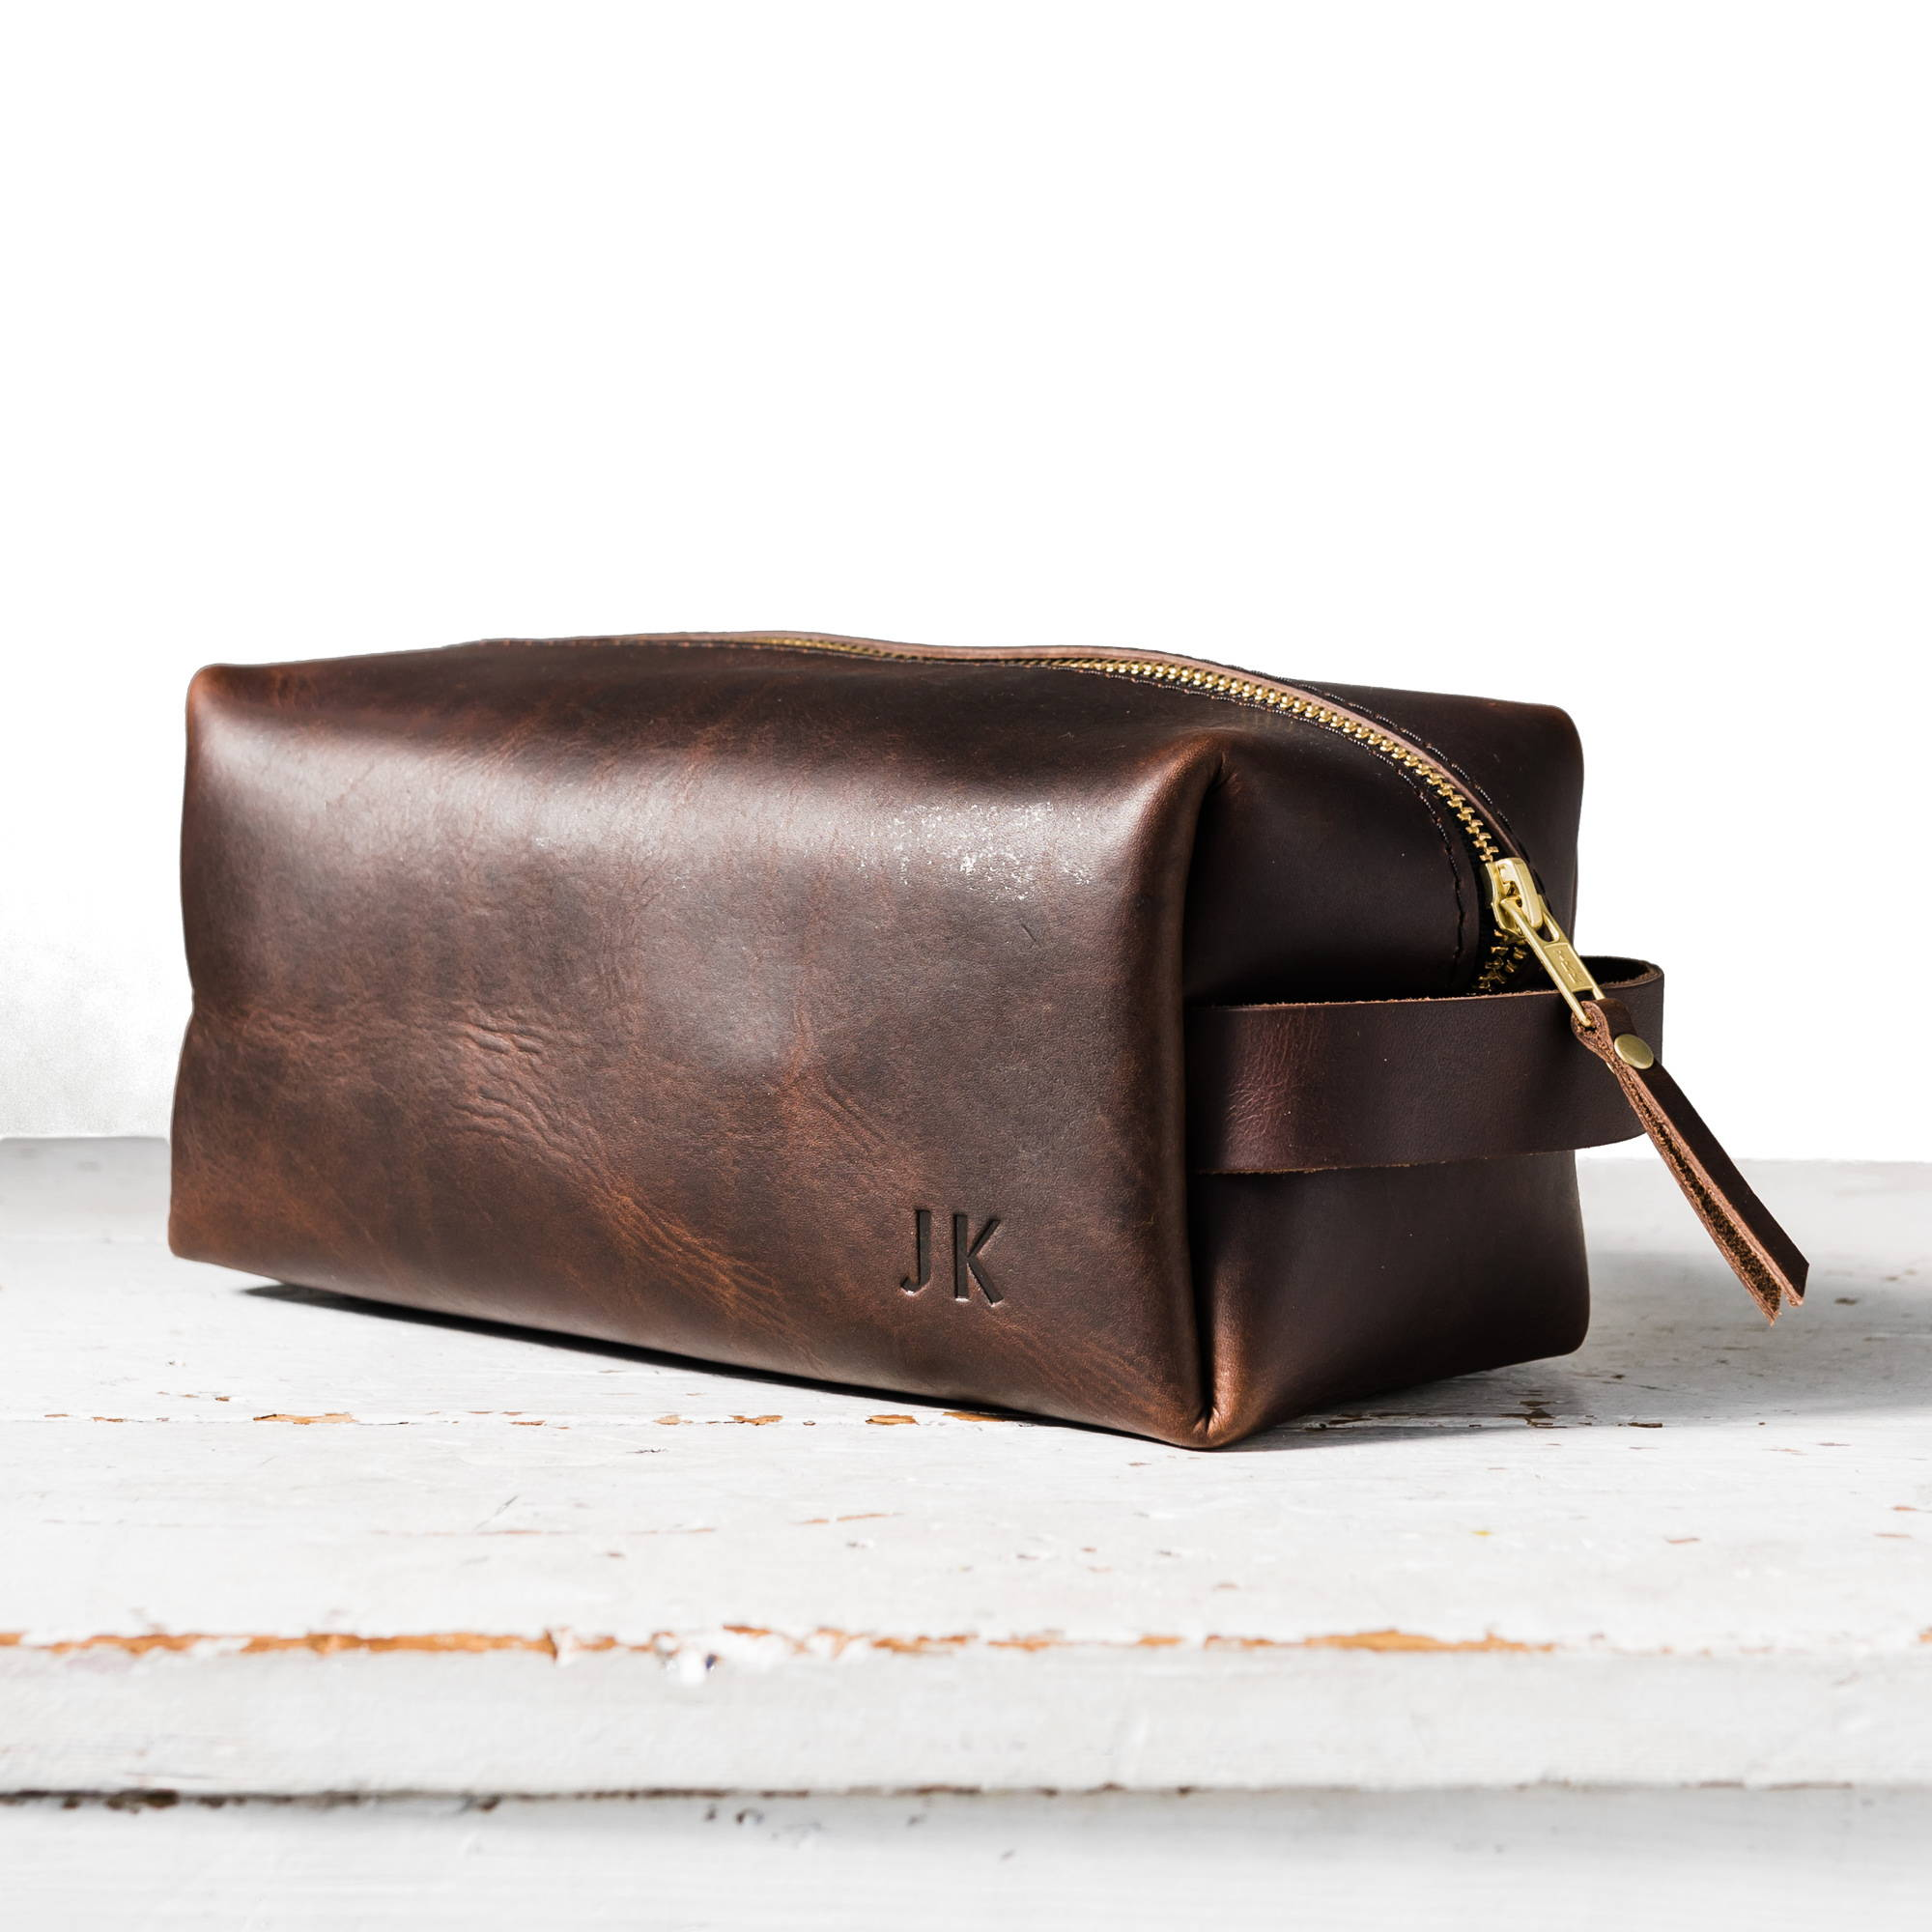 grizzly handmade leather dopp kit by portland leather goods